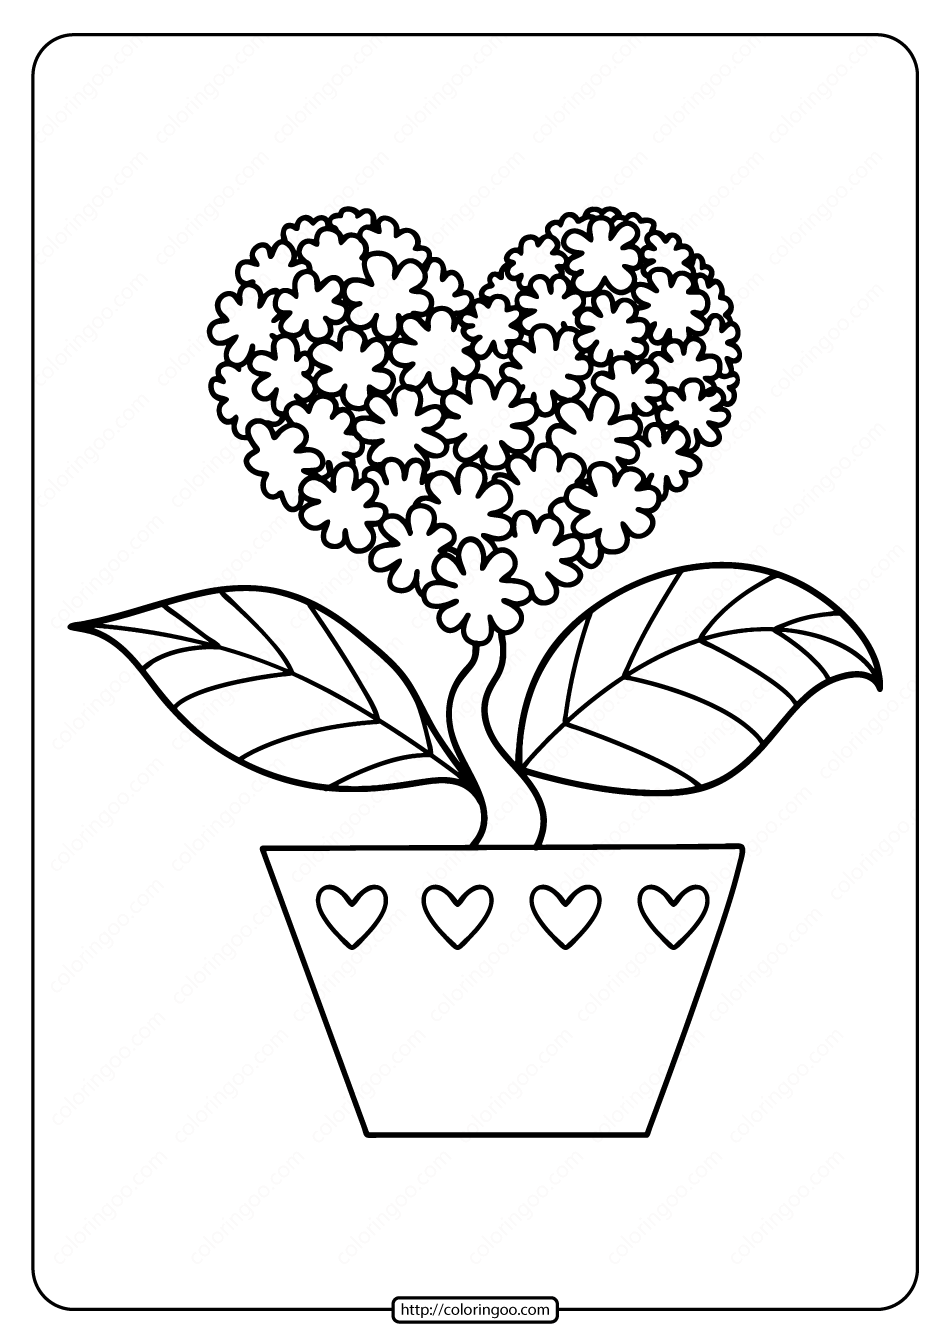 heart to color heart coloring pages 11 coloring kids to color heart